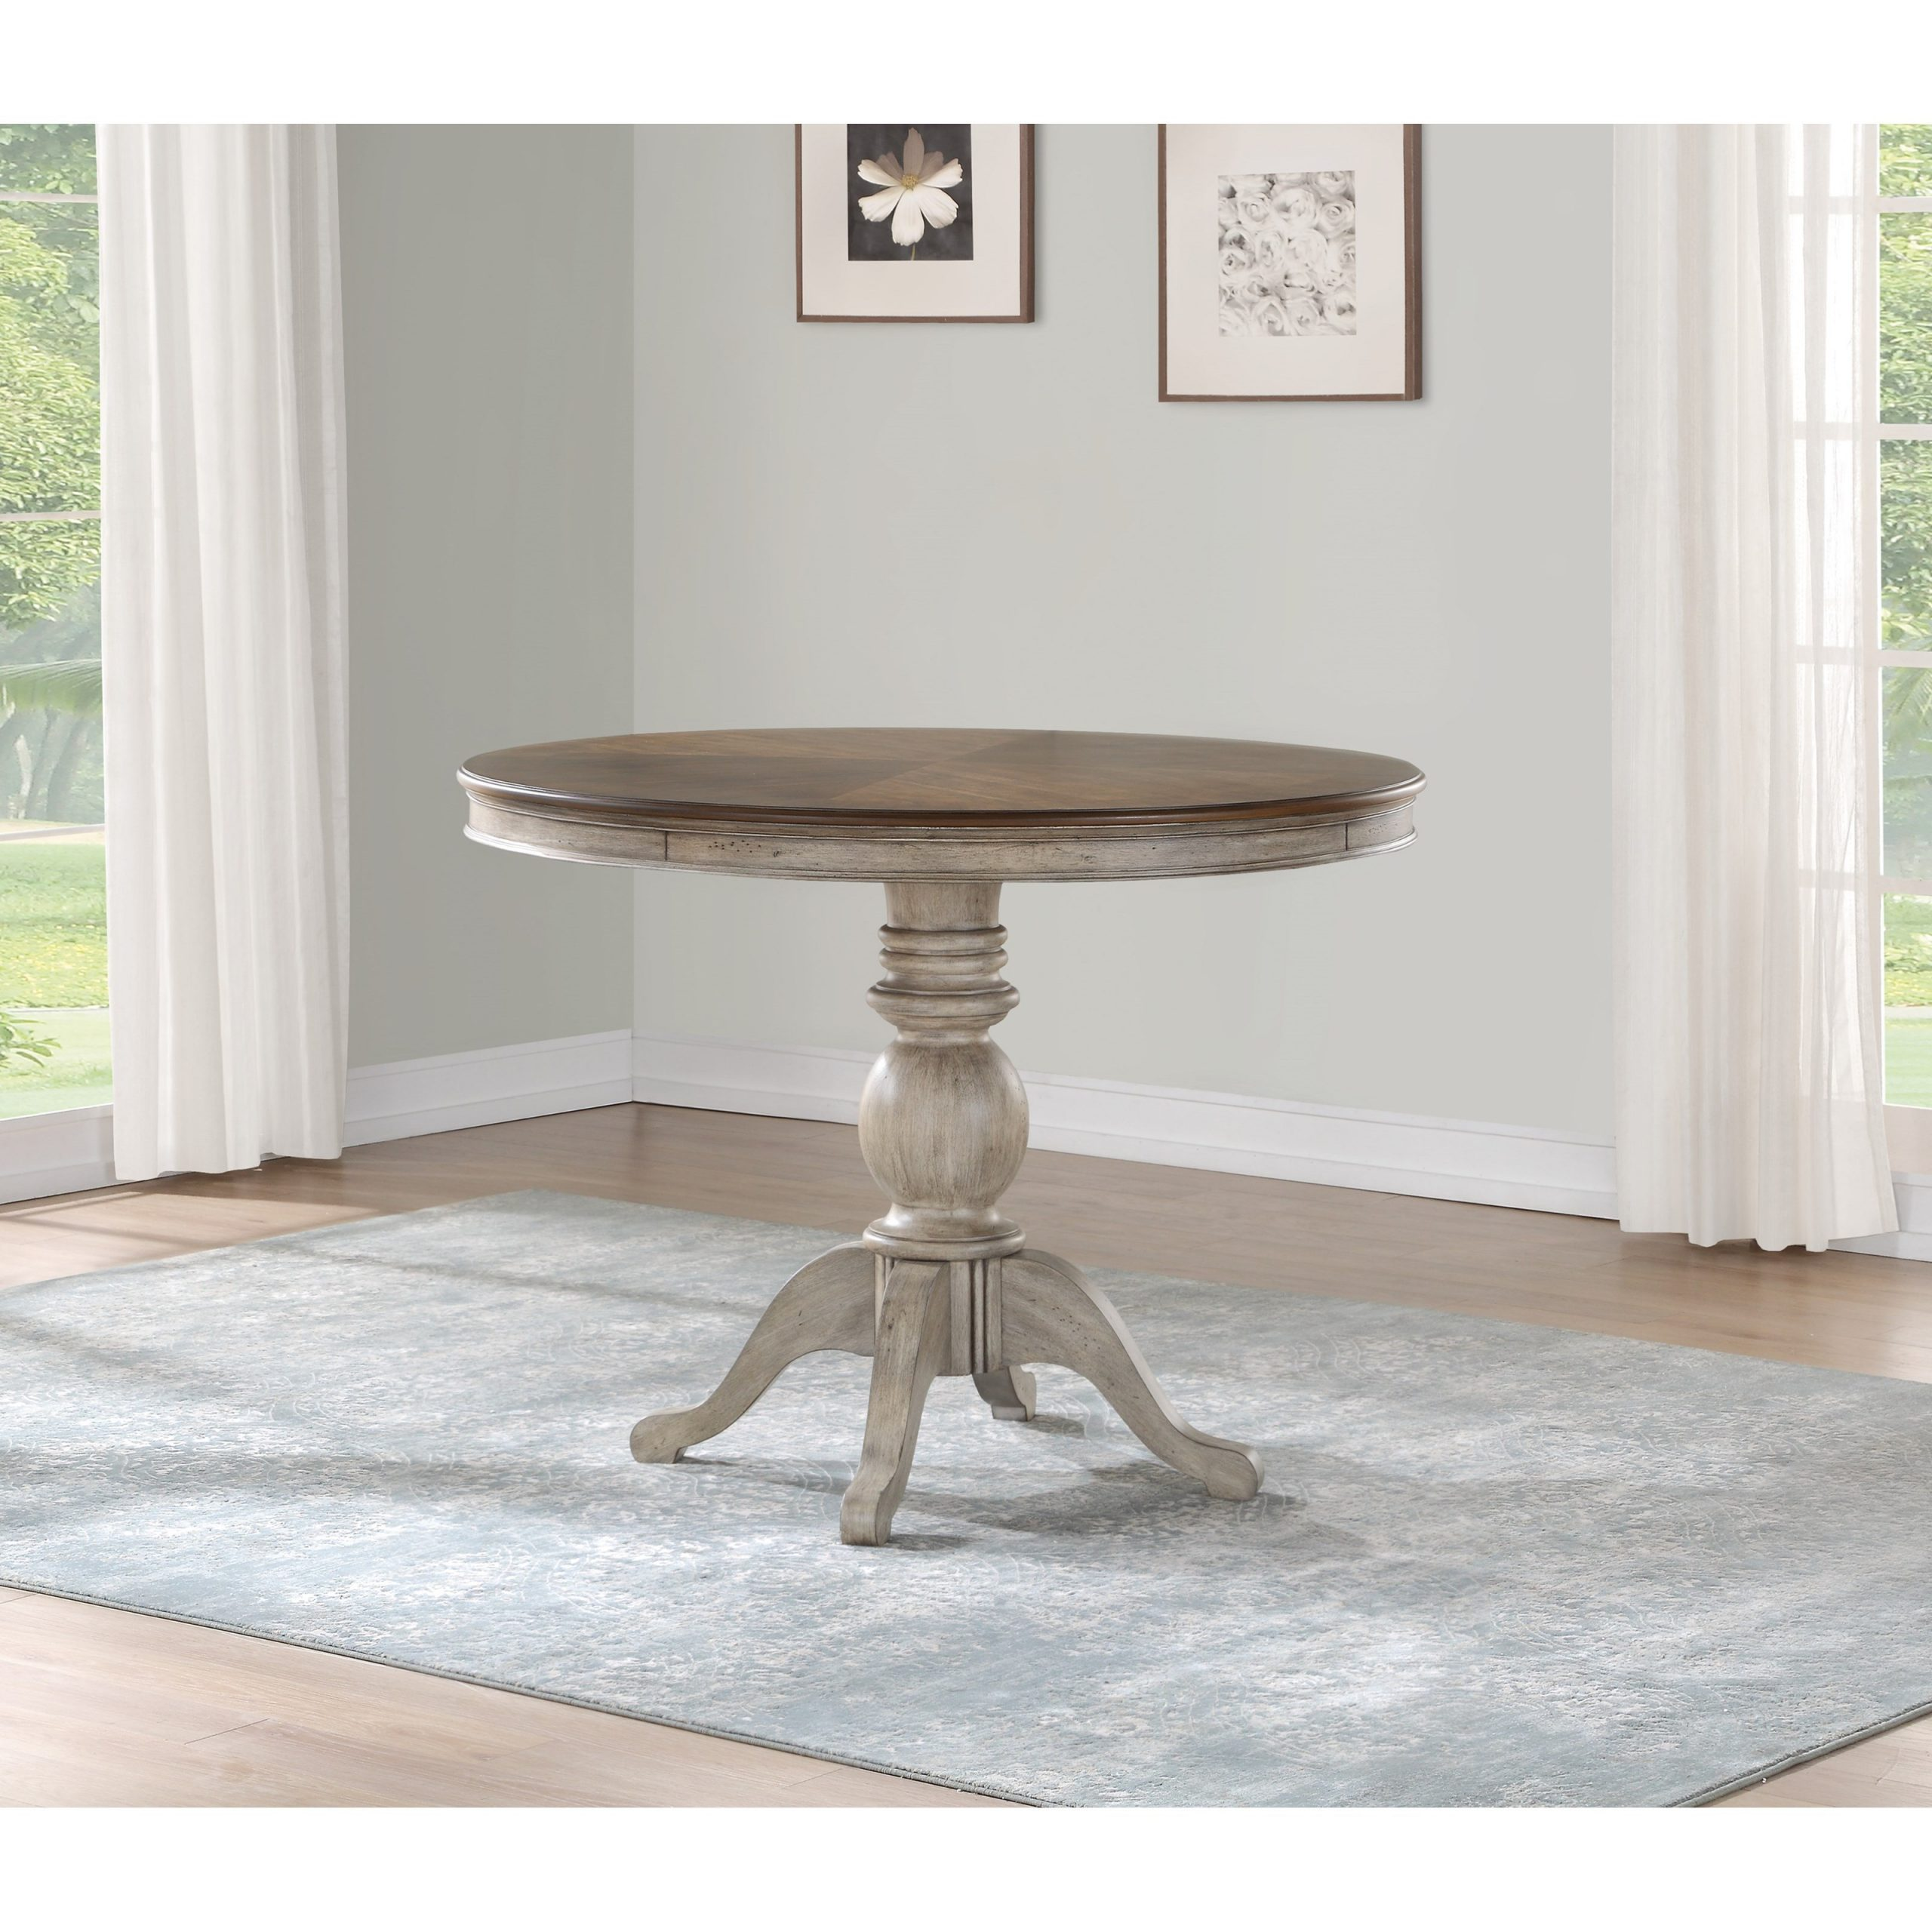 Flexsteel Ventura Relaxed Vintage Pedestal Counter Height Pertaining To Recent Bar Height Pedestal Dining Tables (View 4 of 15)